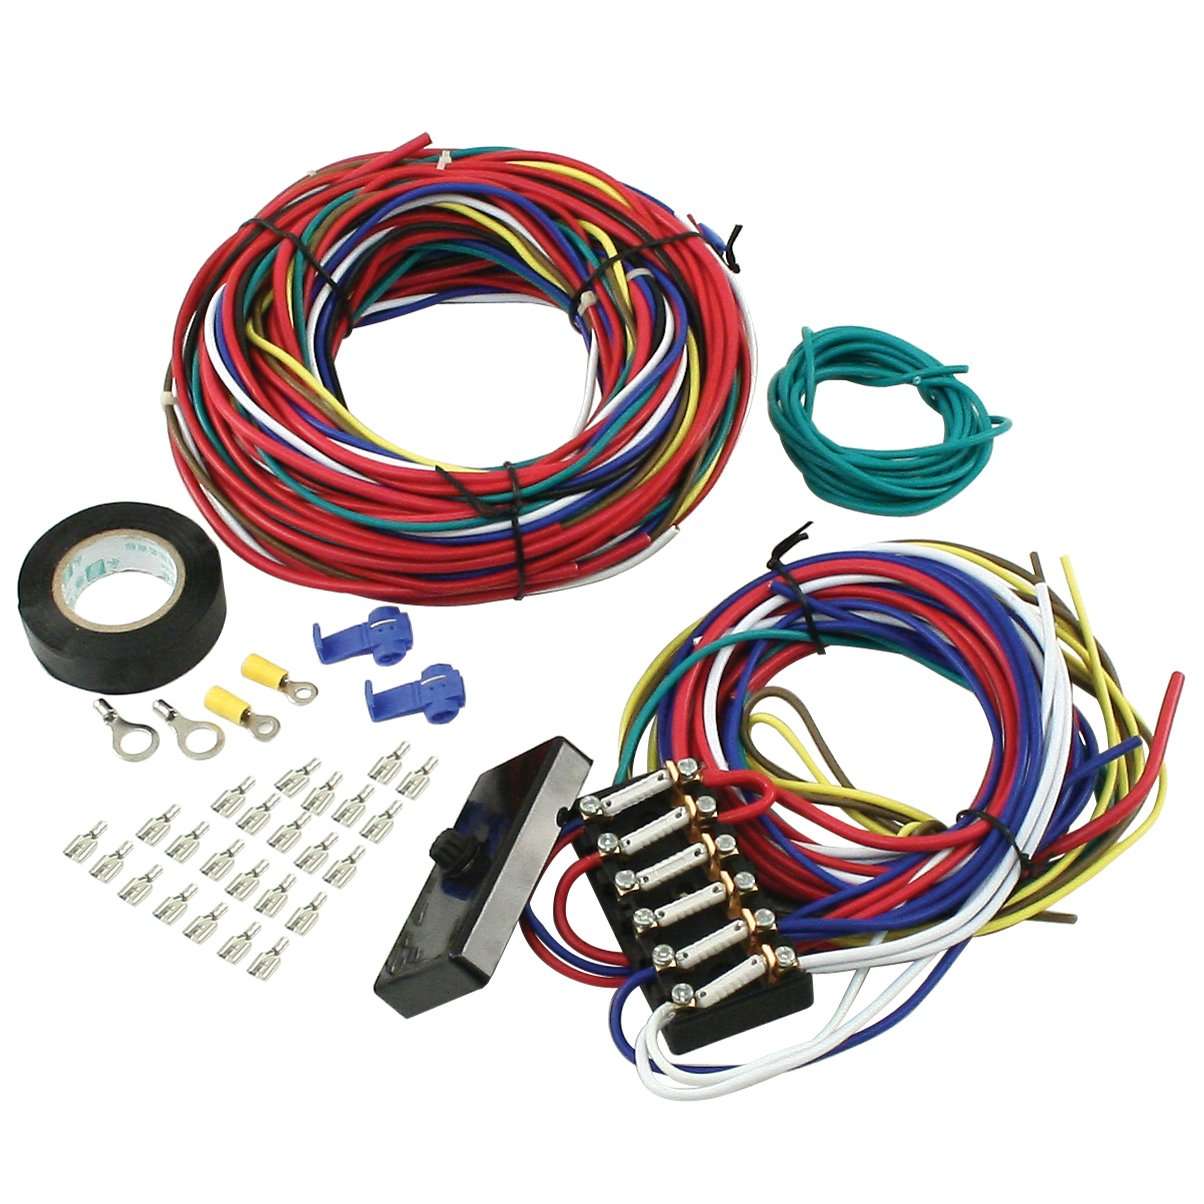 amazon com empi 00 9466 0 wire loom kit vw buggy sand rail rh amazon com wiring harness components pdf wiring harness parts mopar